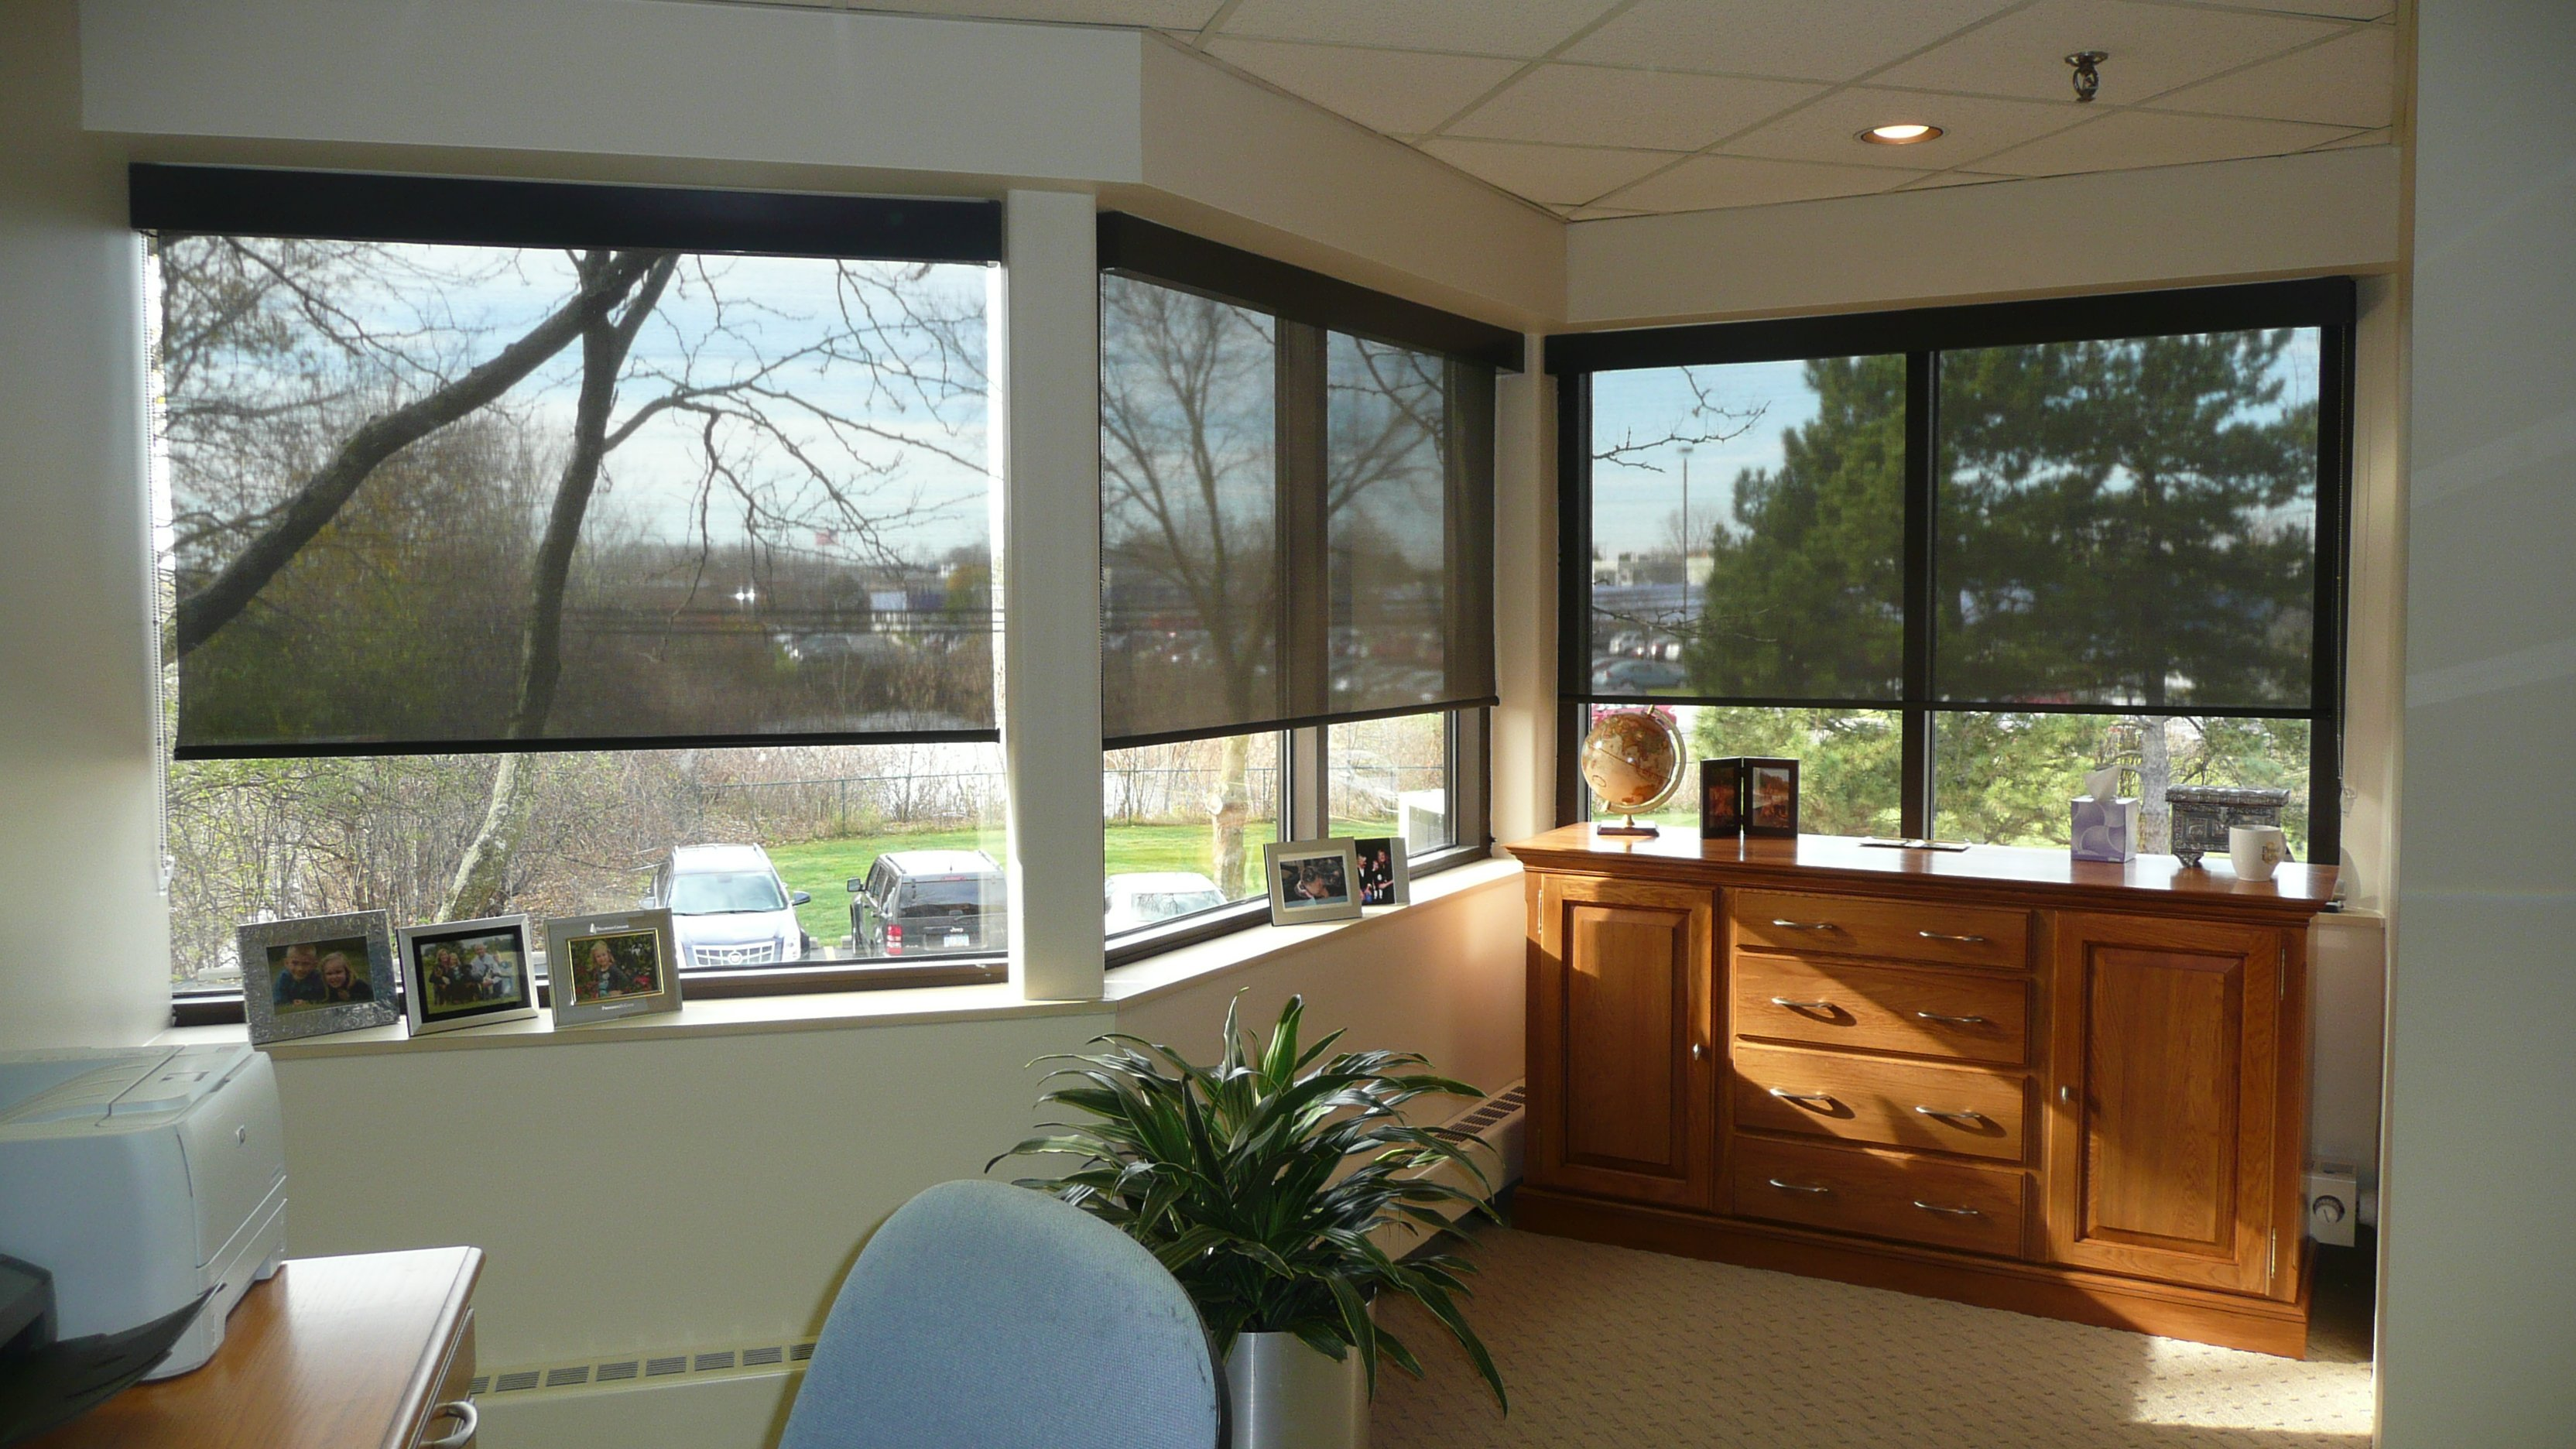 Commercial Solar Shades Ann Arbor Michigan Office